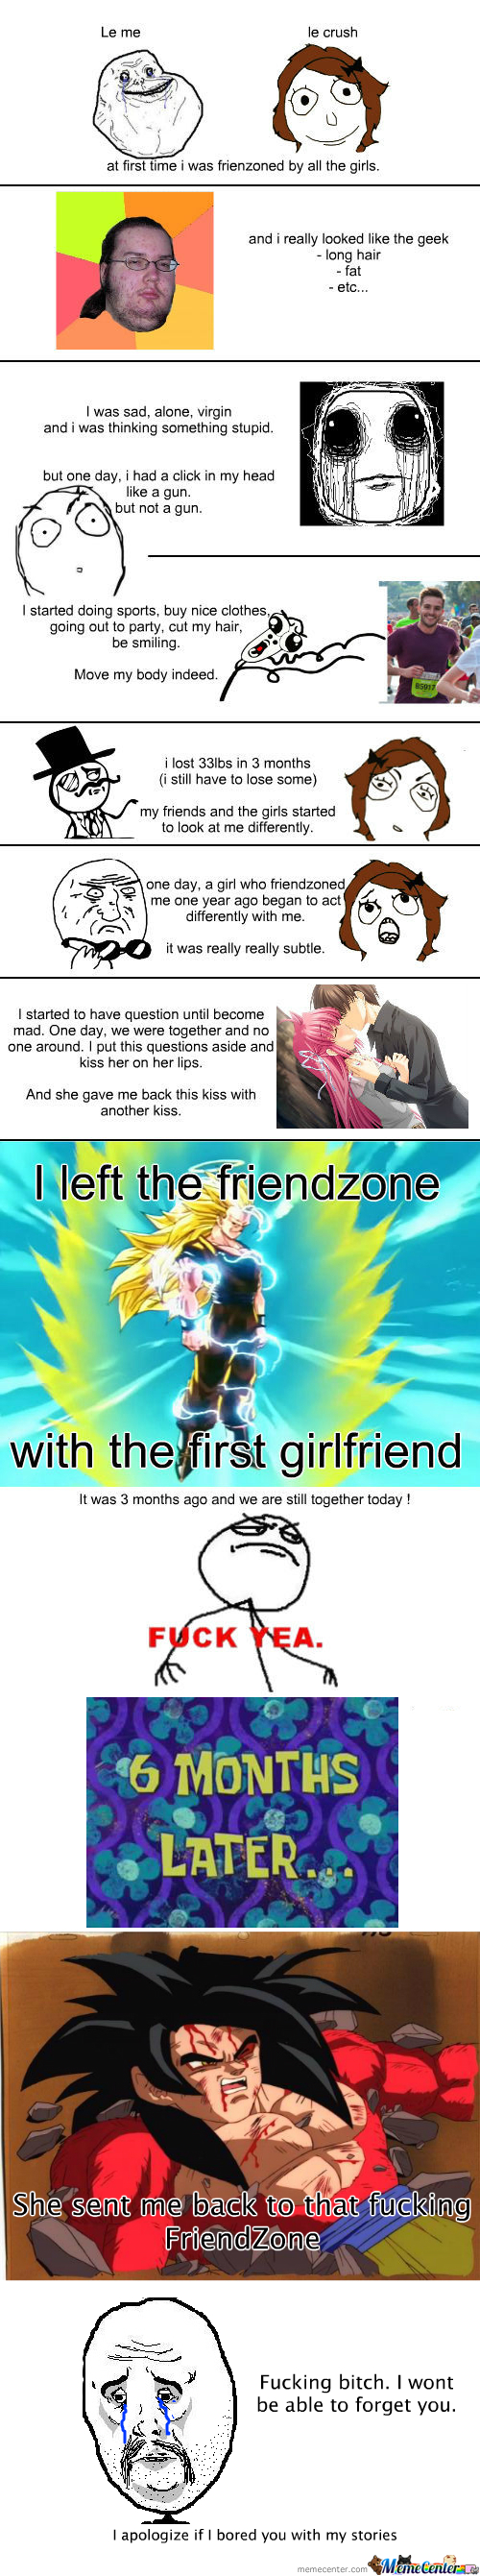 [RMX] I Left The Friendzone